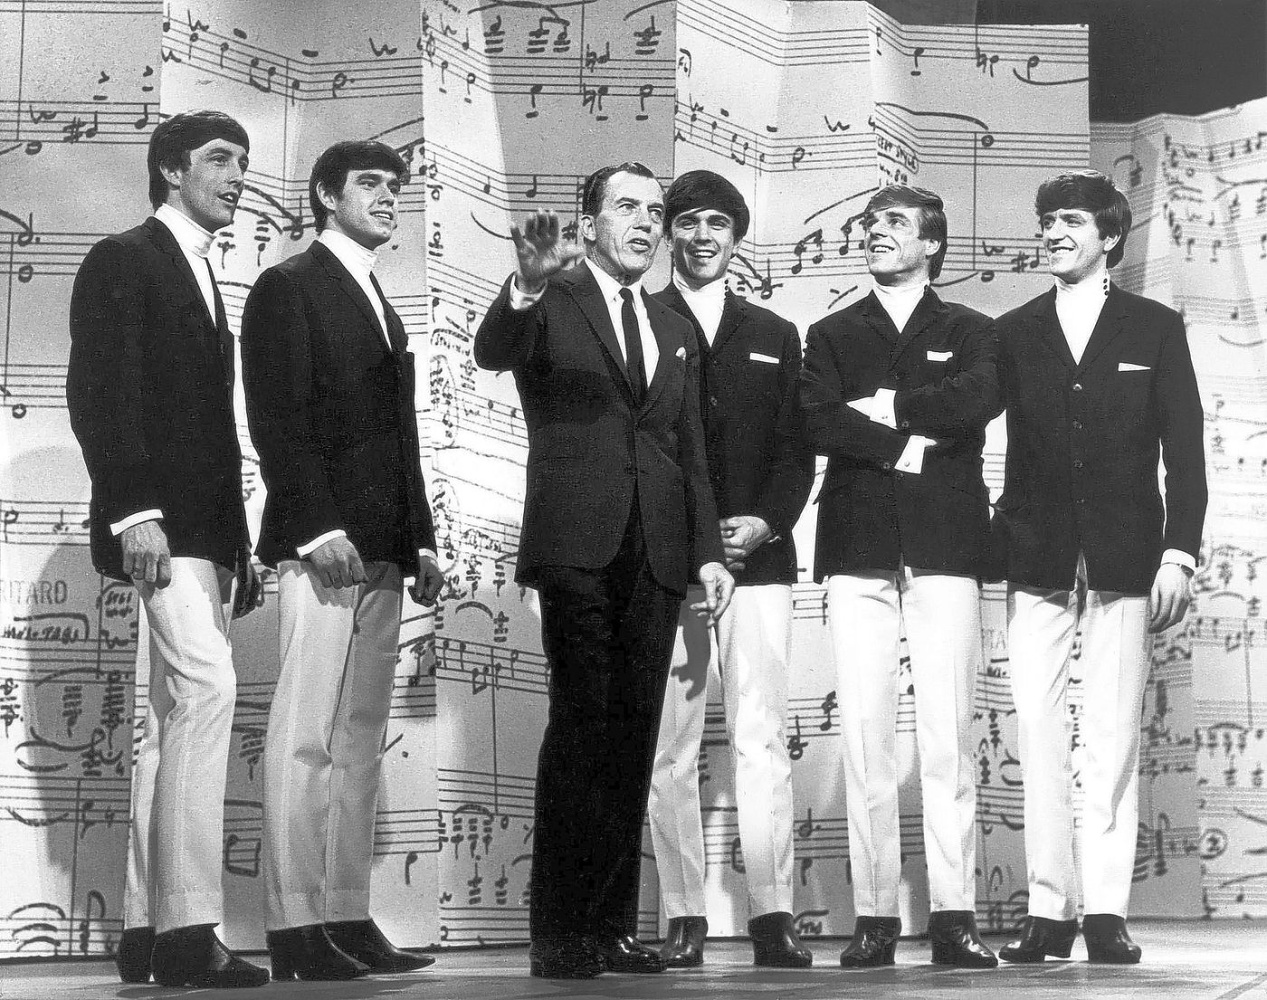 The Dave Clark 5 on The Ed Sullivan Show  / 8 февраля 1964